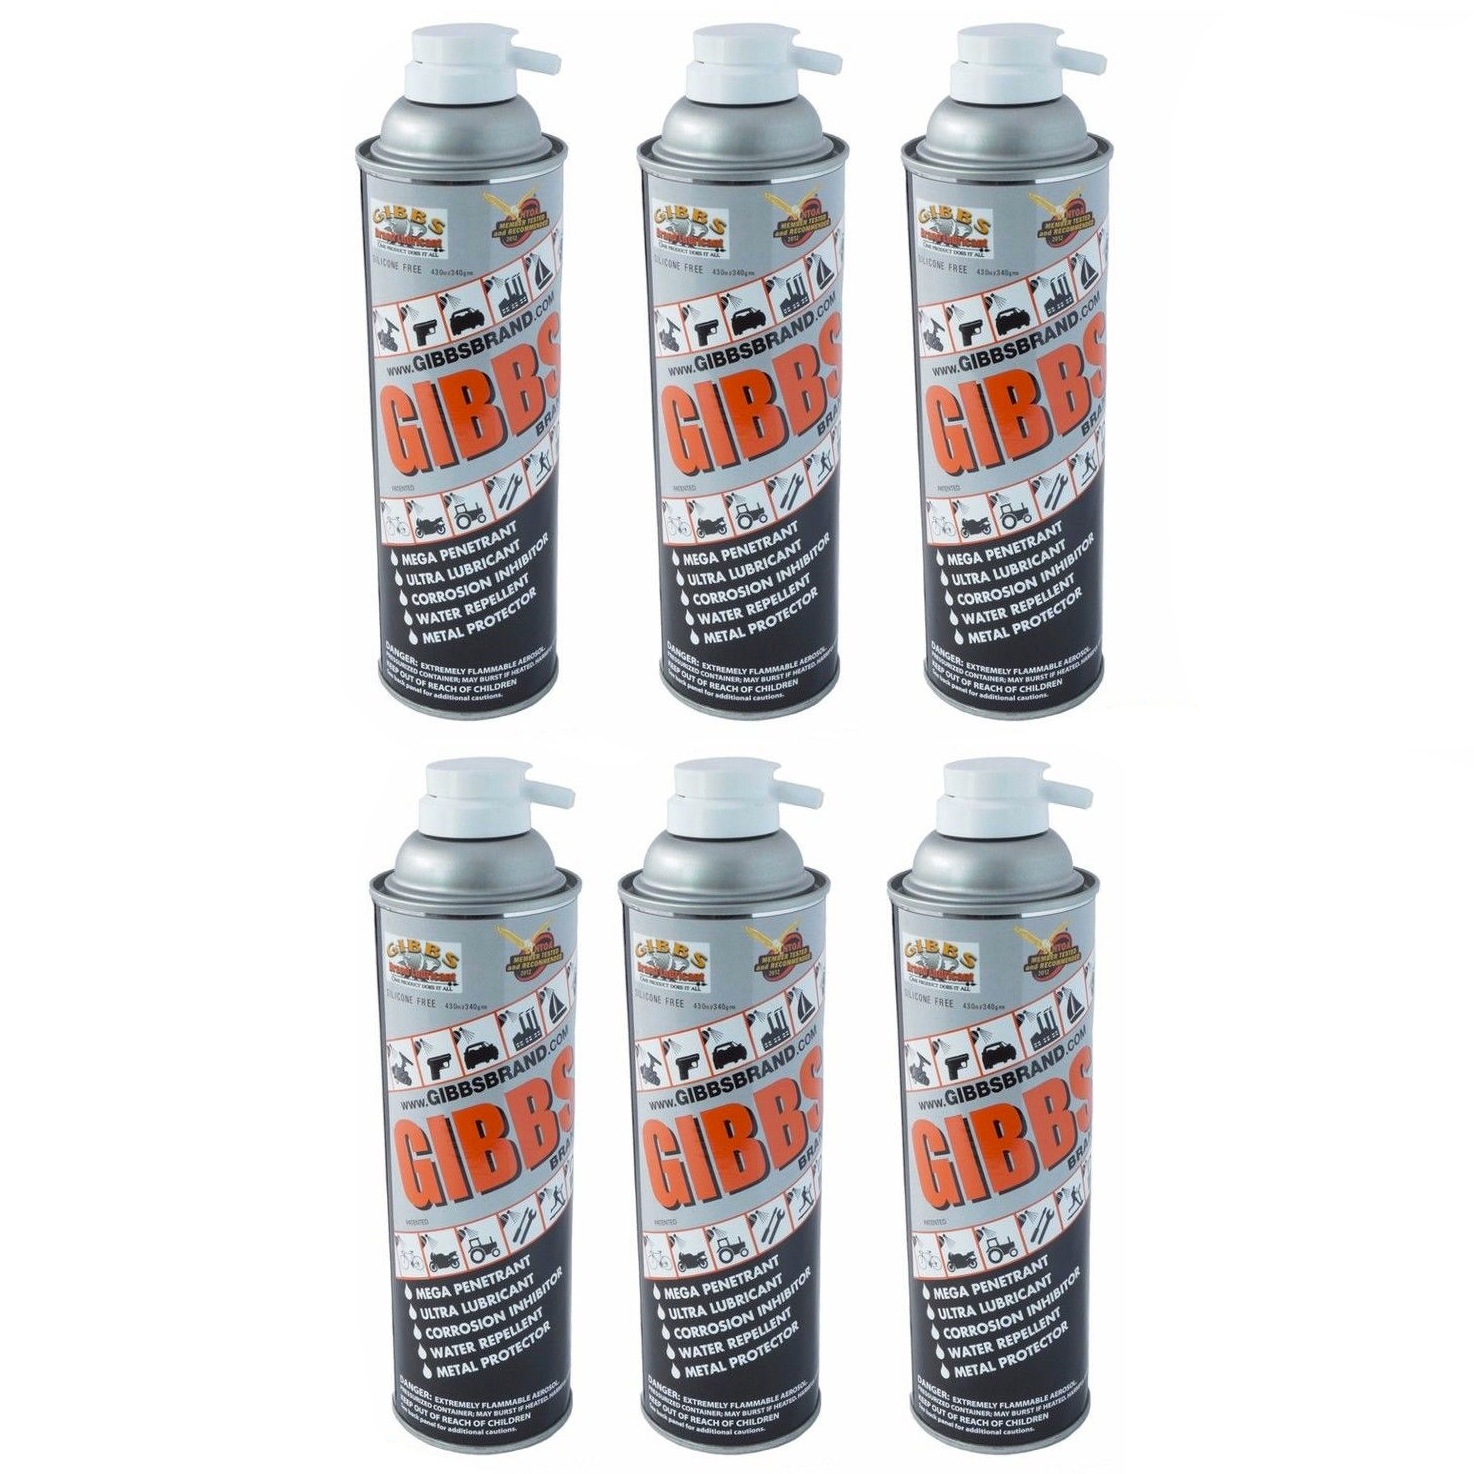 Gibbs Brand Lubricant 12 oz Spray Can, Set of 6